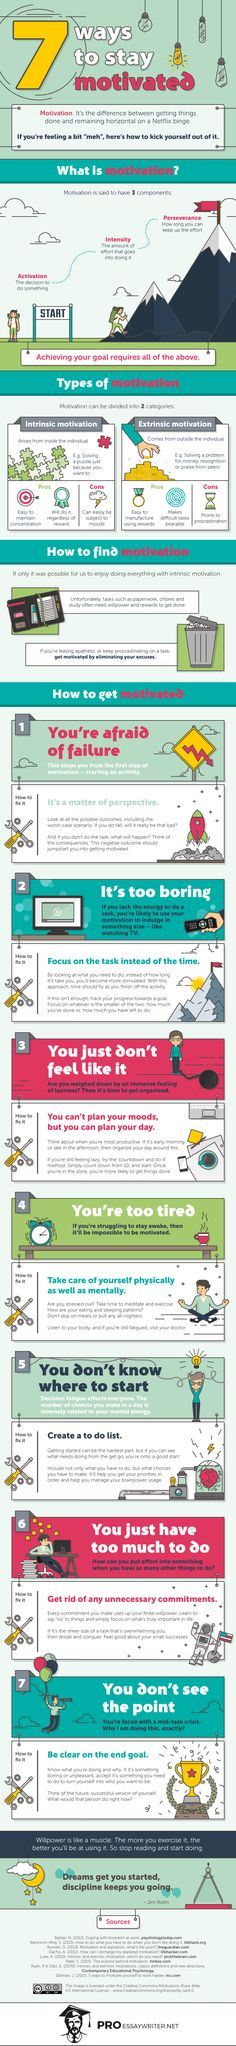 How to stay motivated. | INforgraphic on motivation